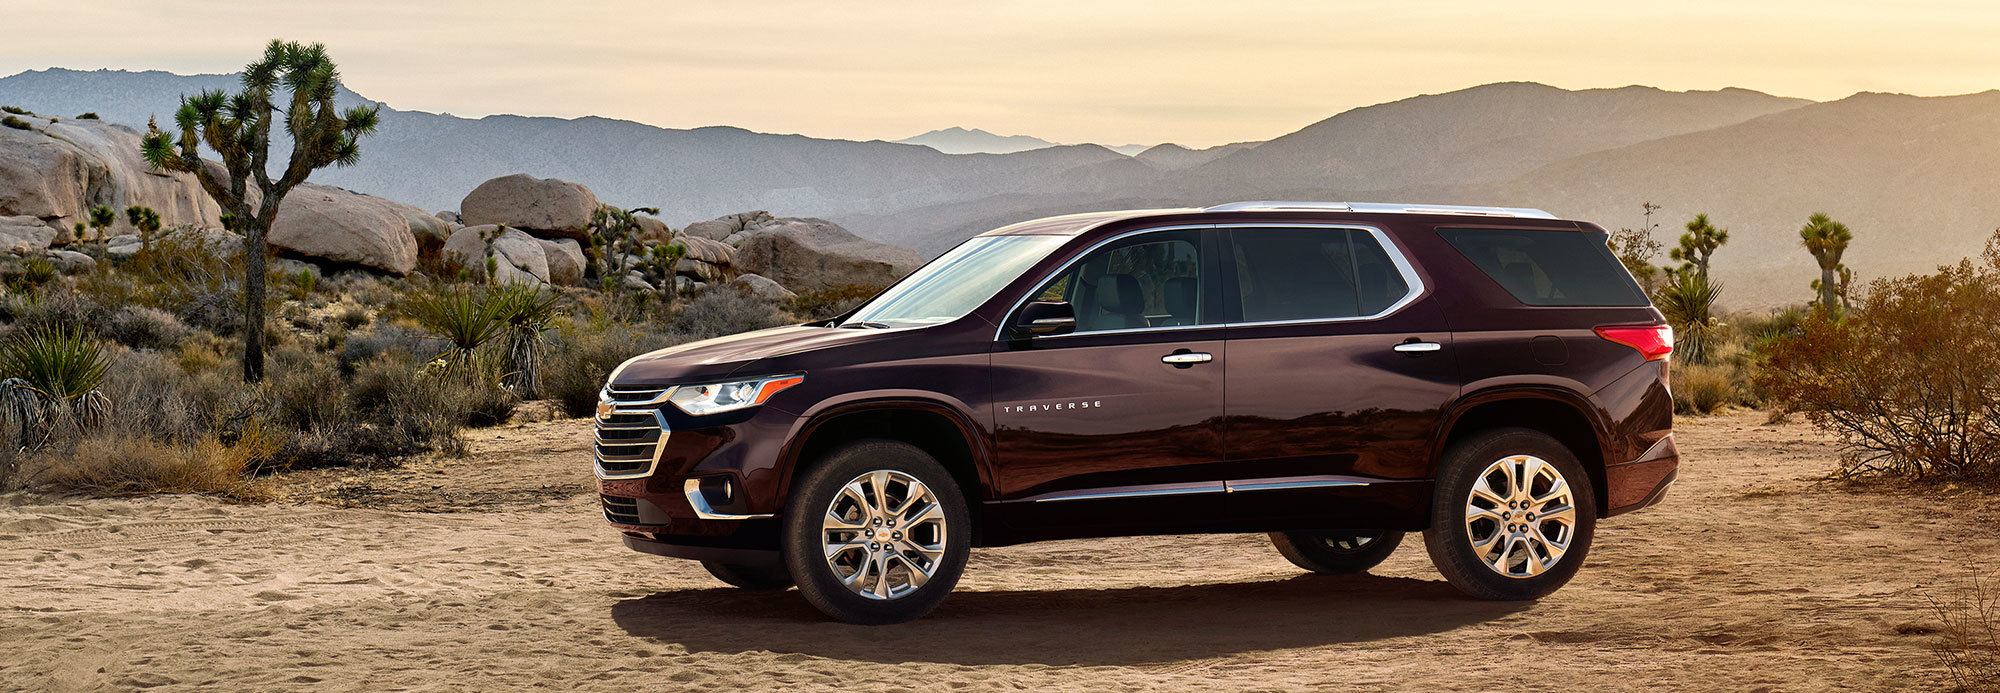 2020 Chevrolet Traverse for Sale near Pauls Valley, OK